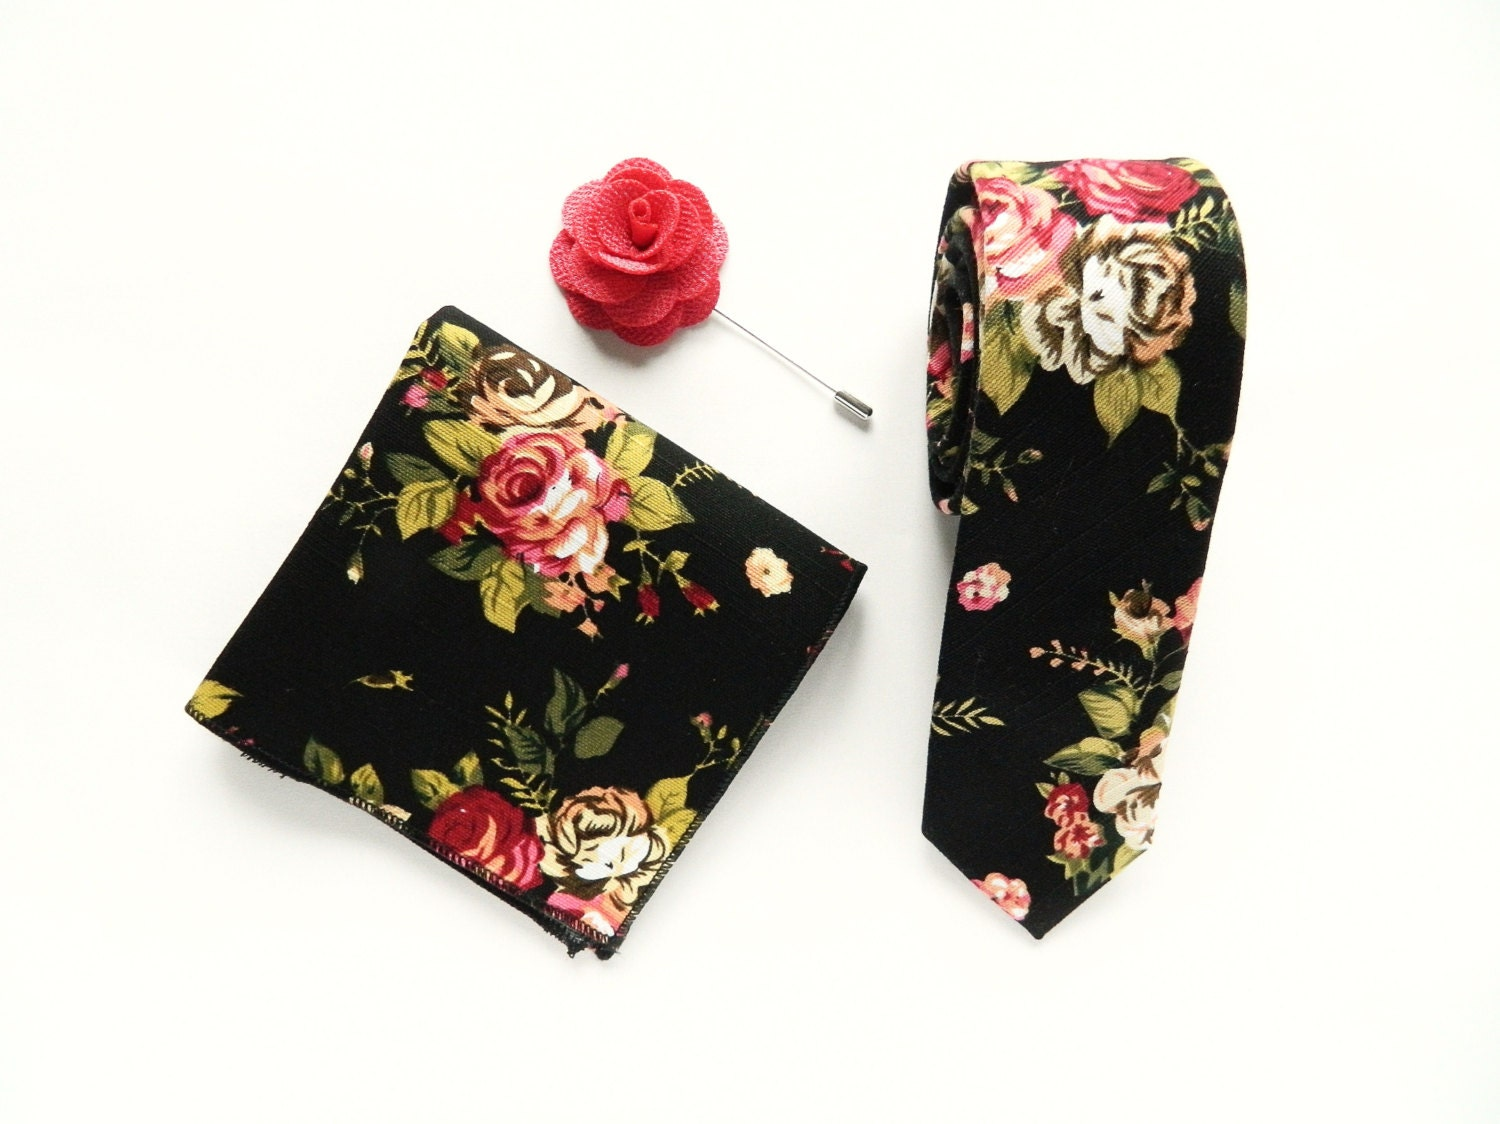 Men's Black Floral Tie Pocket Square Wedding Tie Gift For